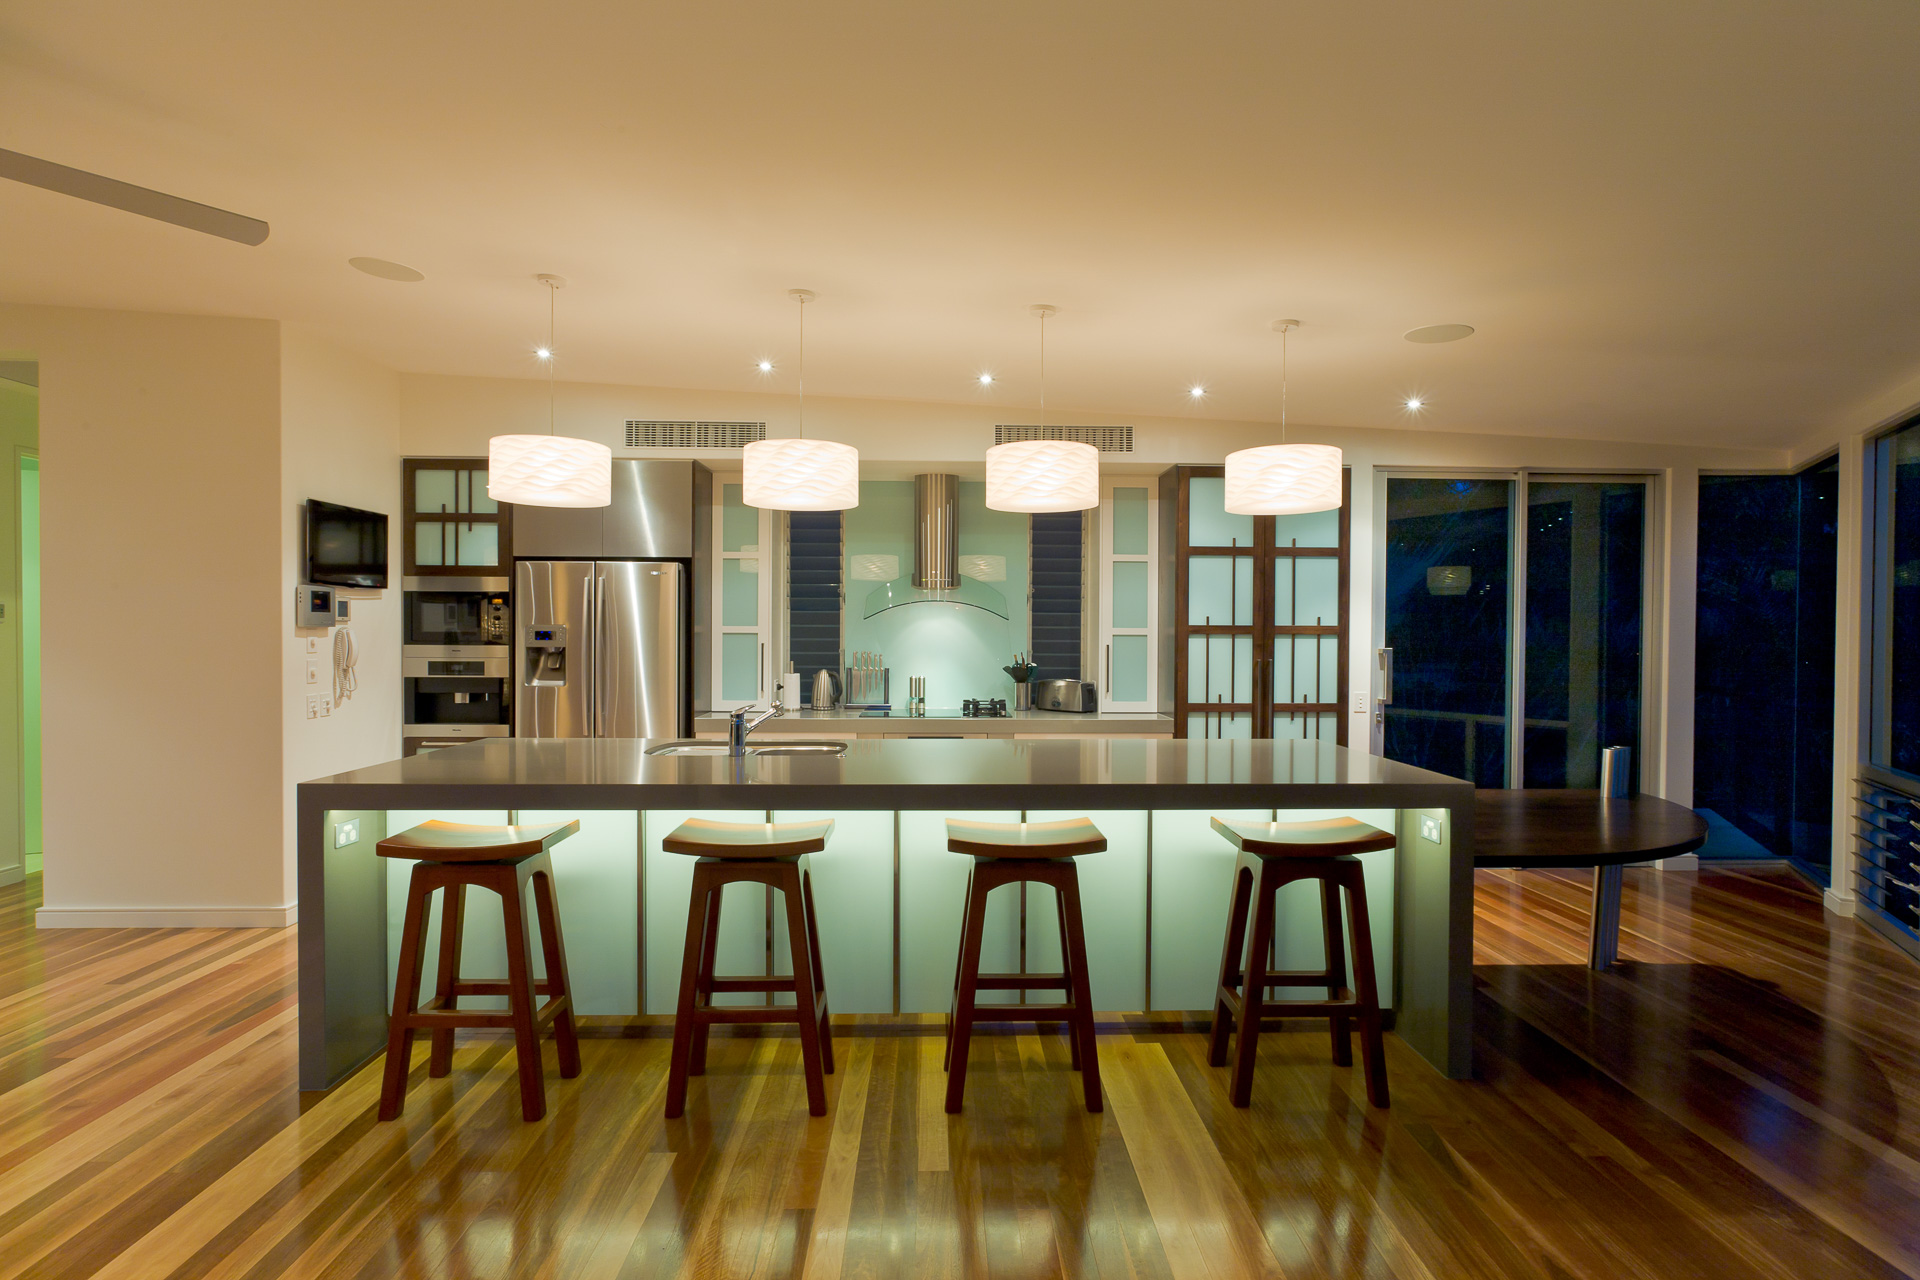 kitchen, timber, japanese kitchen, Resort Style Modern House, luxury interior, caesarstone, minka joinery